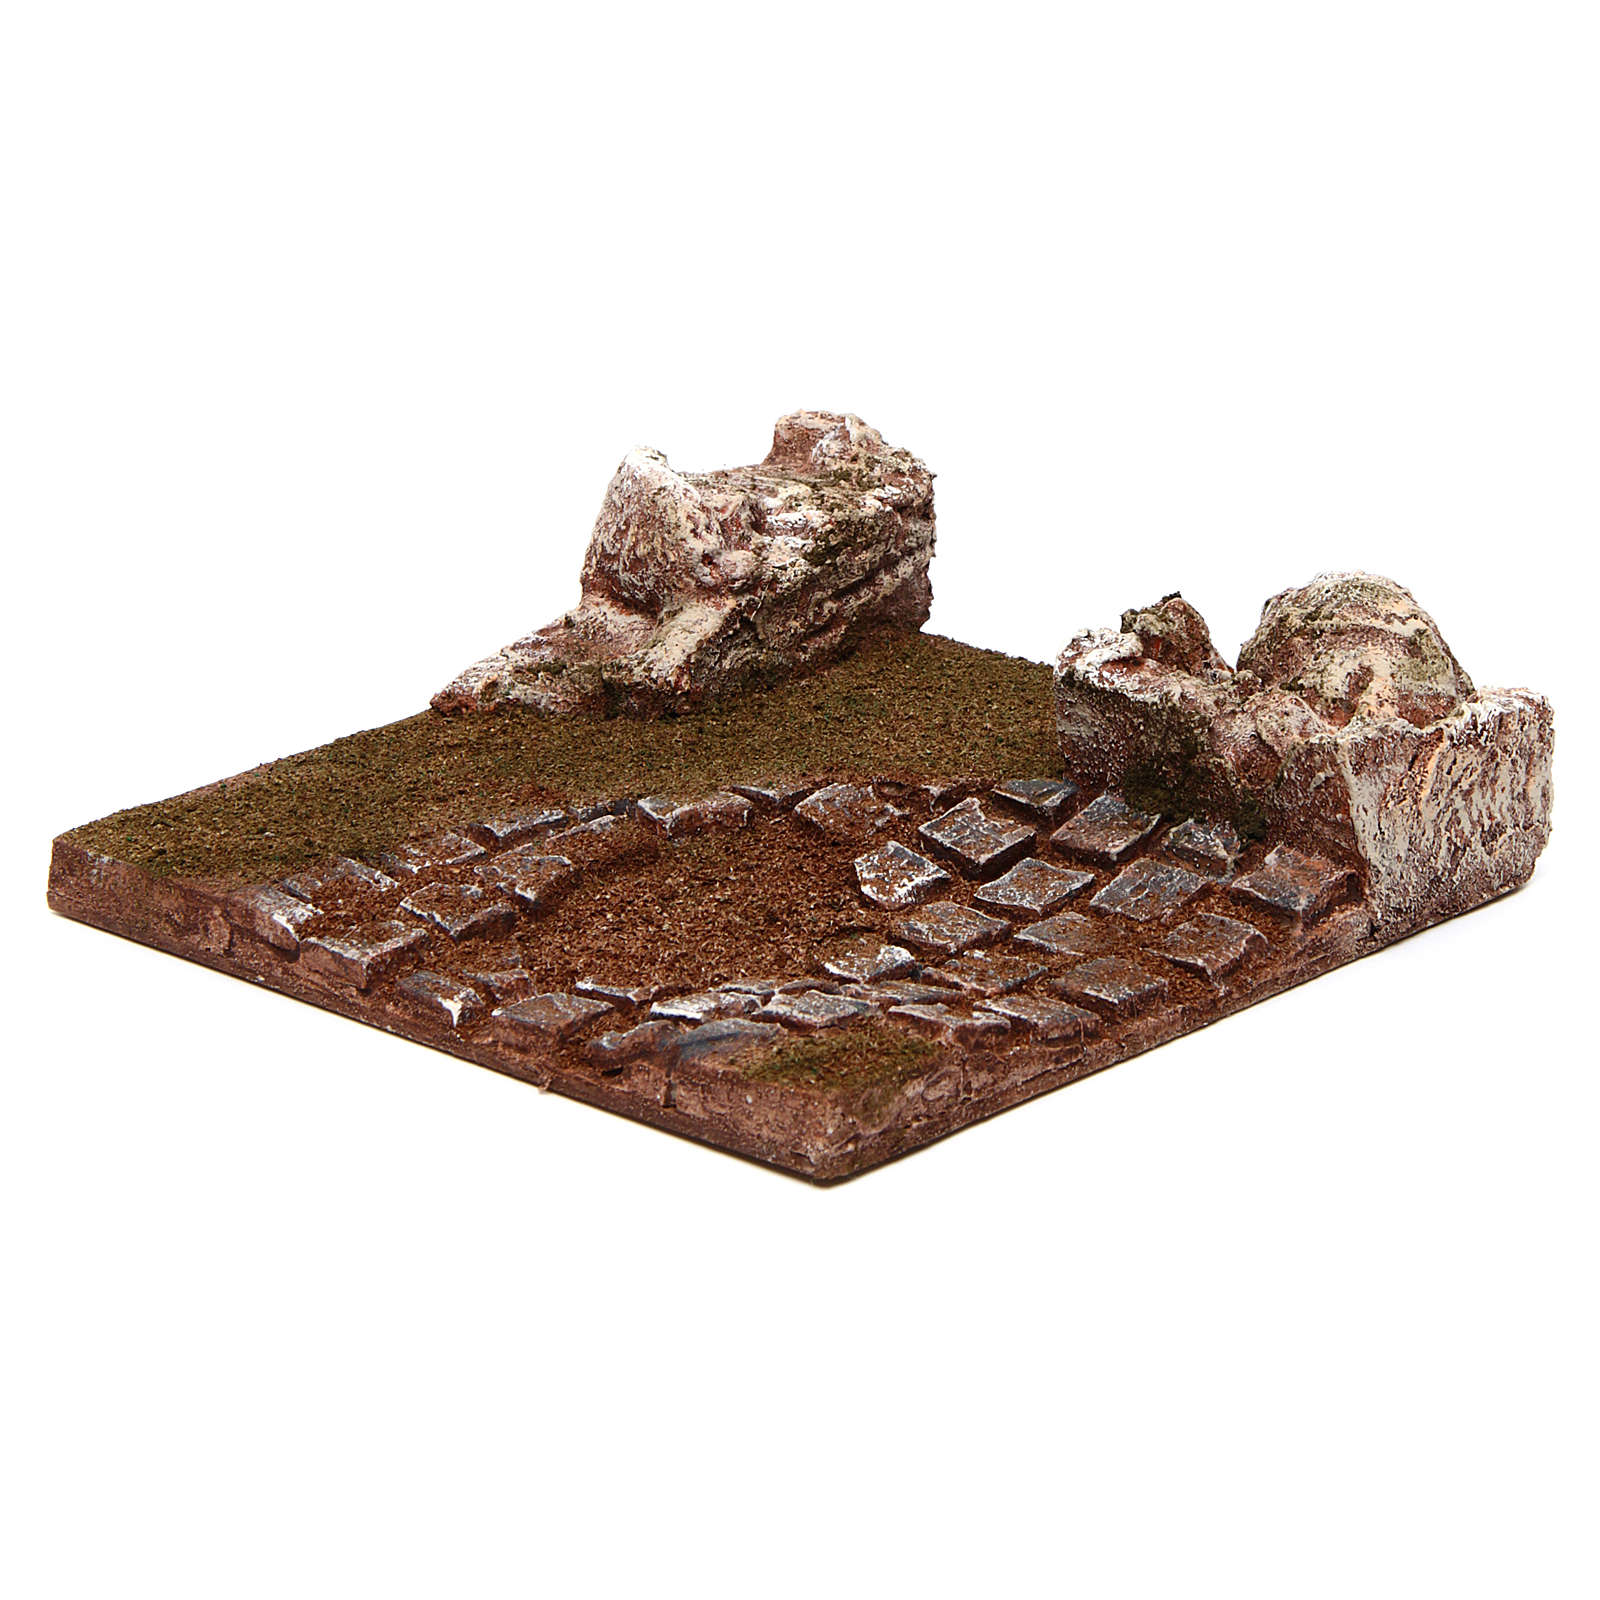 Modular road with bend and rocks 10 cm 4